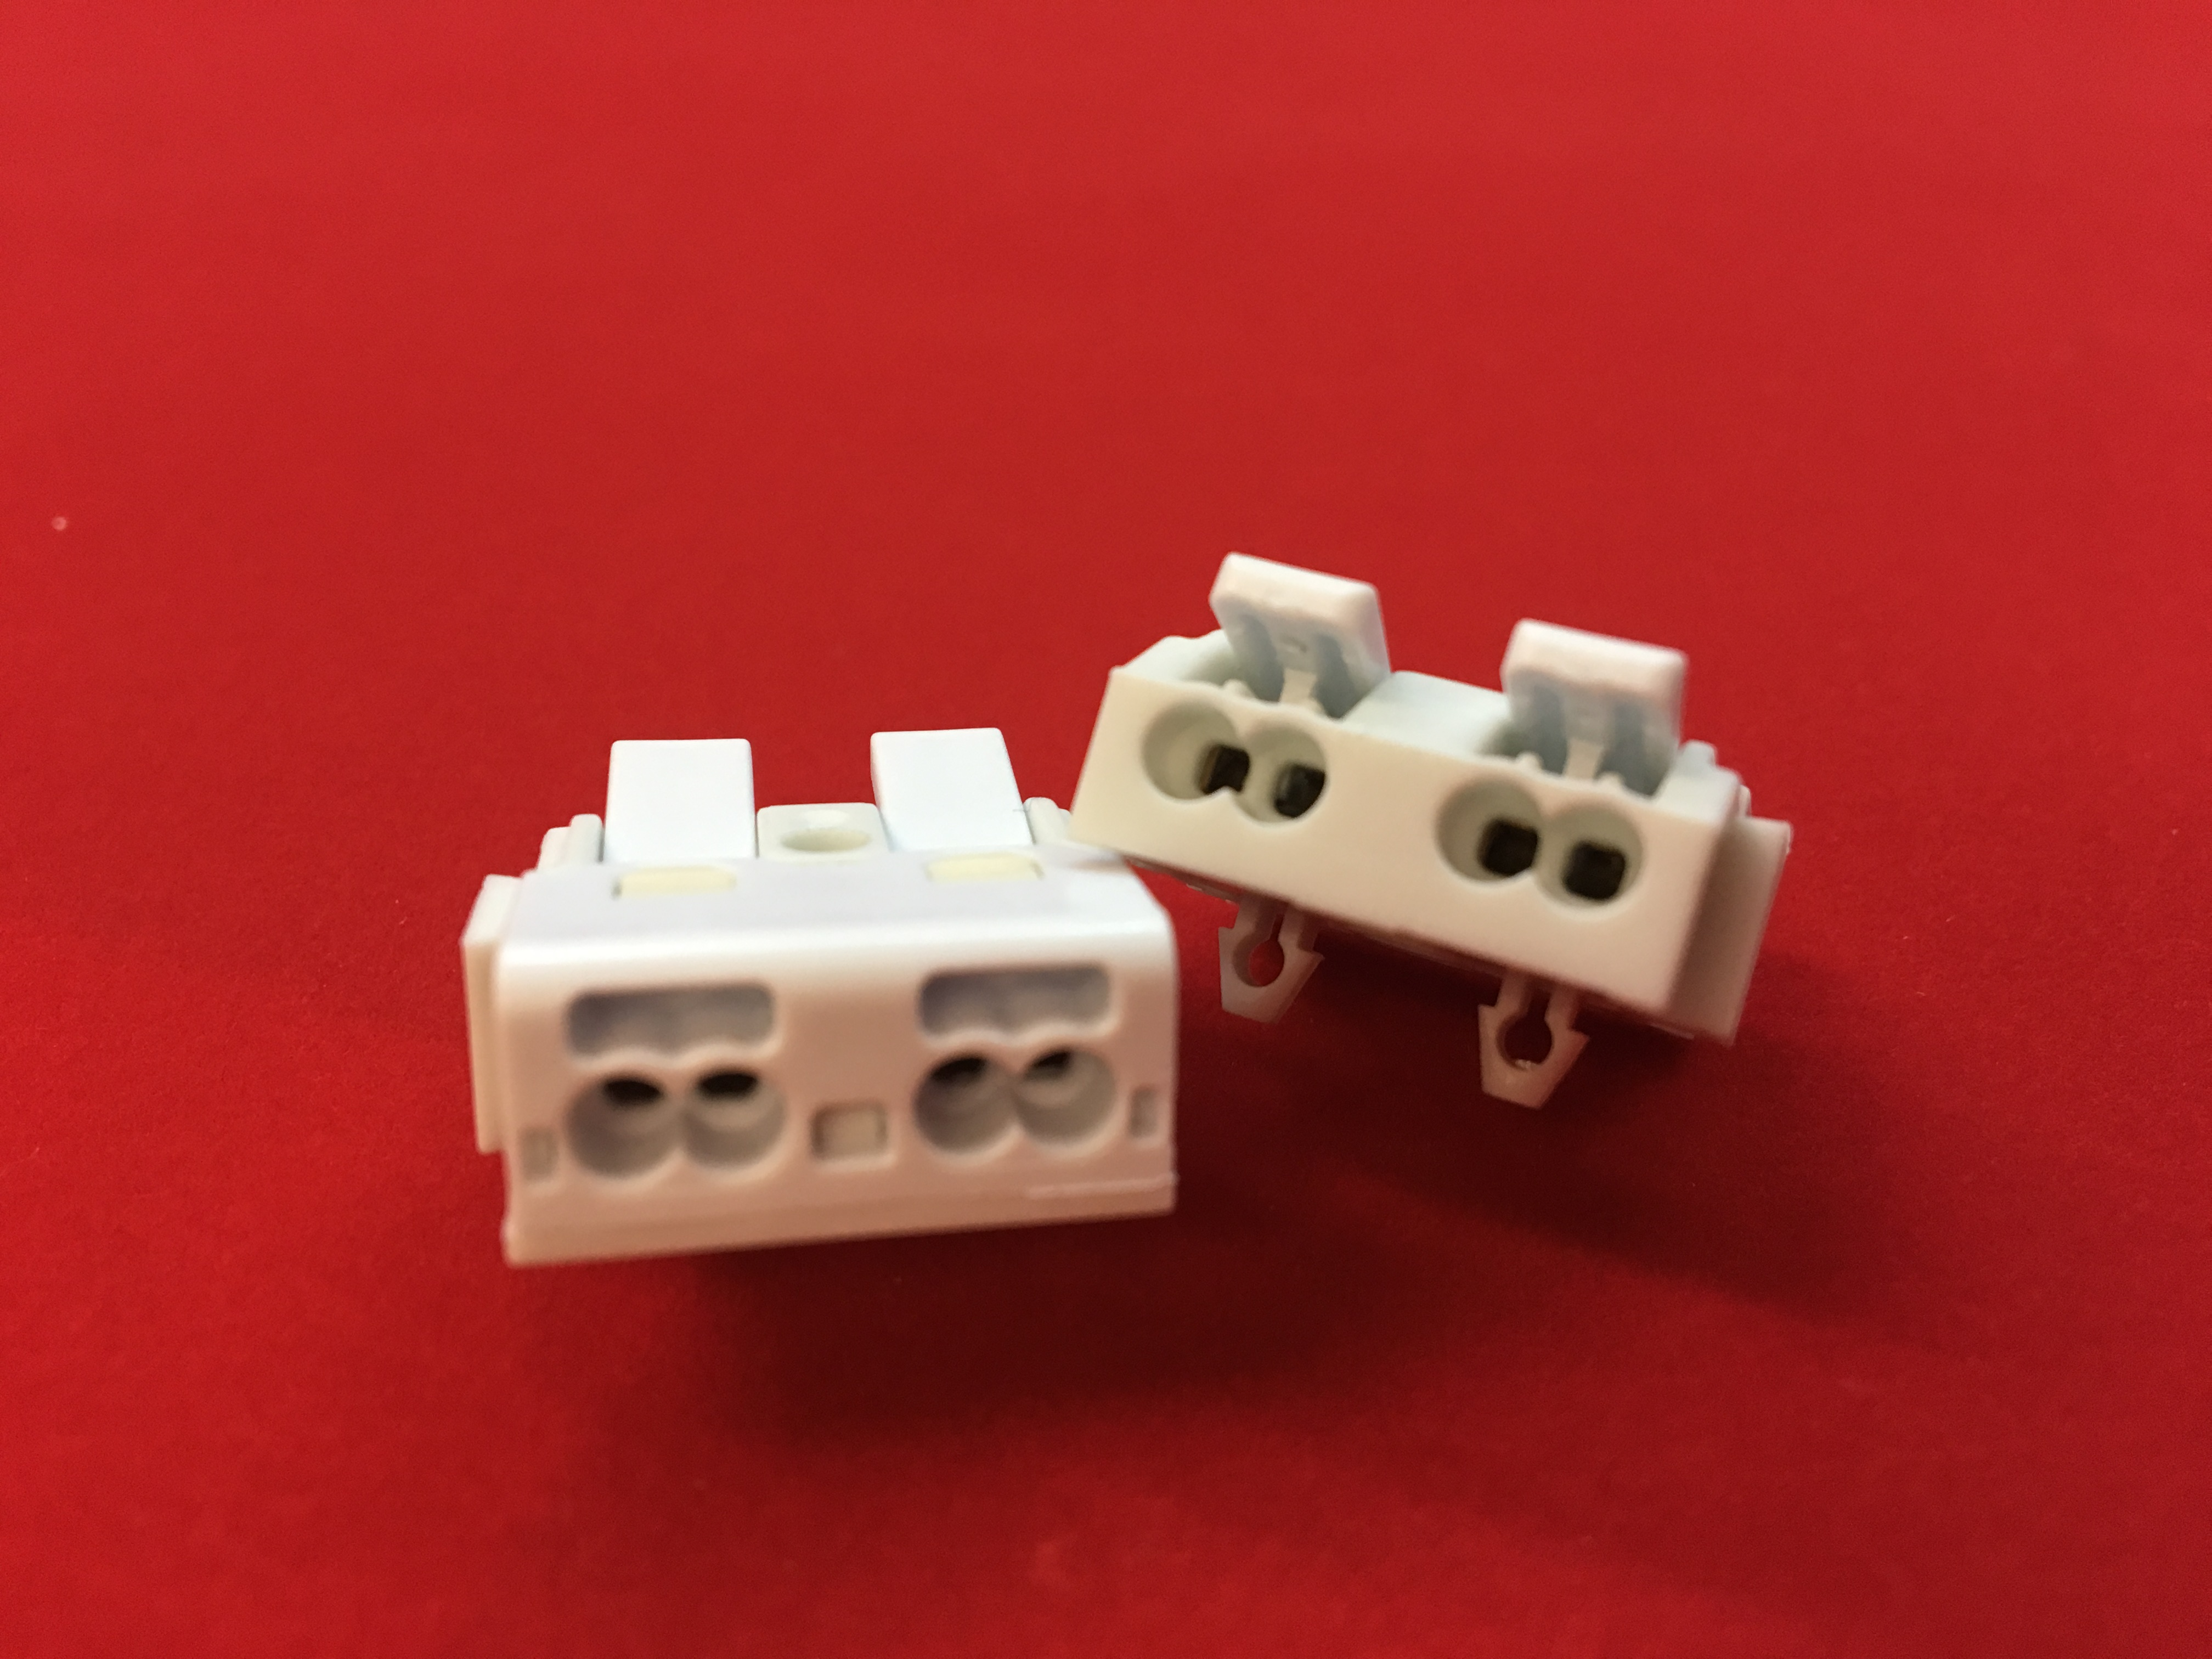 P02-M  SUPER-MINI(only 10mm thick)  Luminaire Pushwire Connector  2 SIDES with